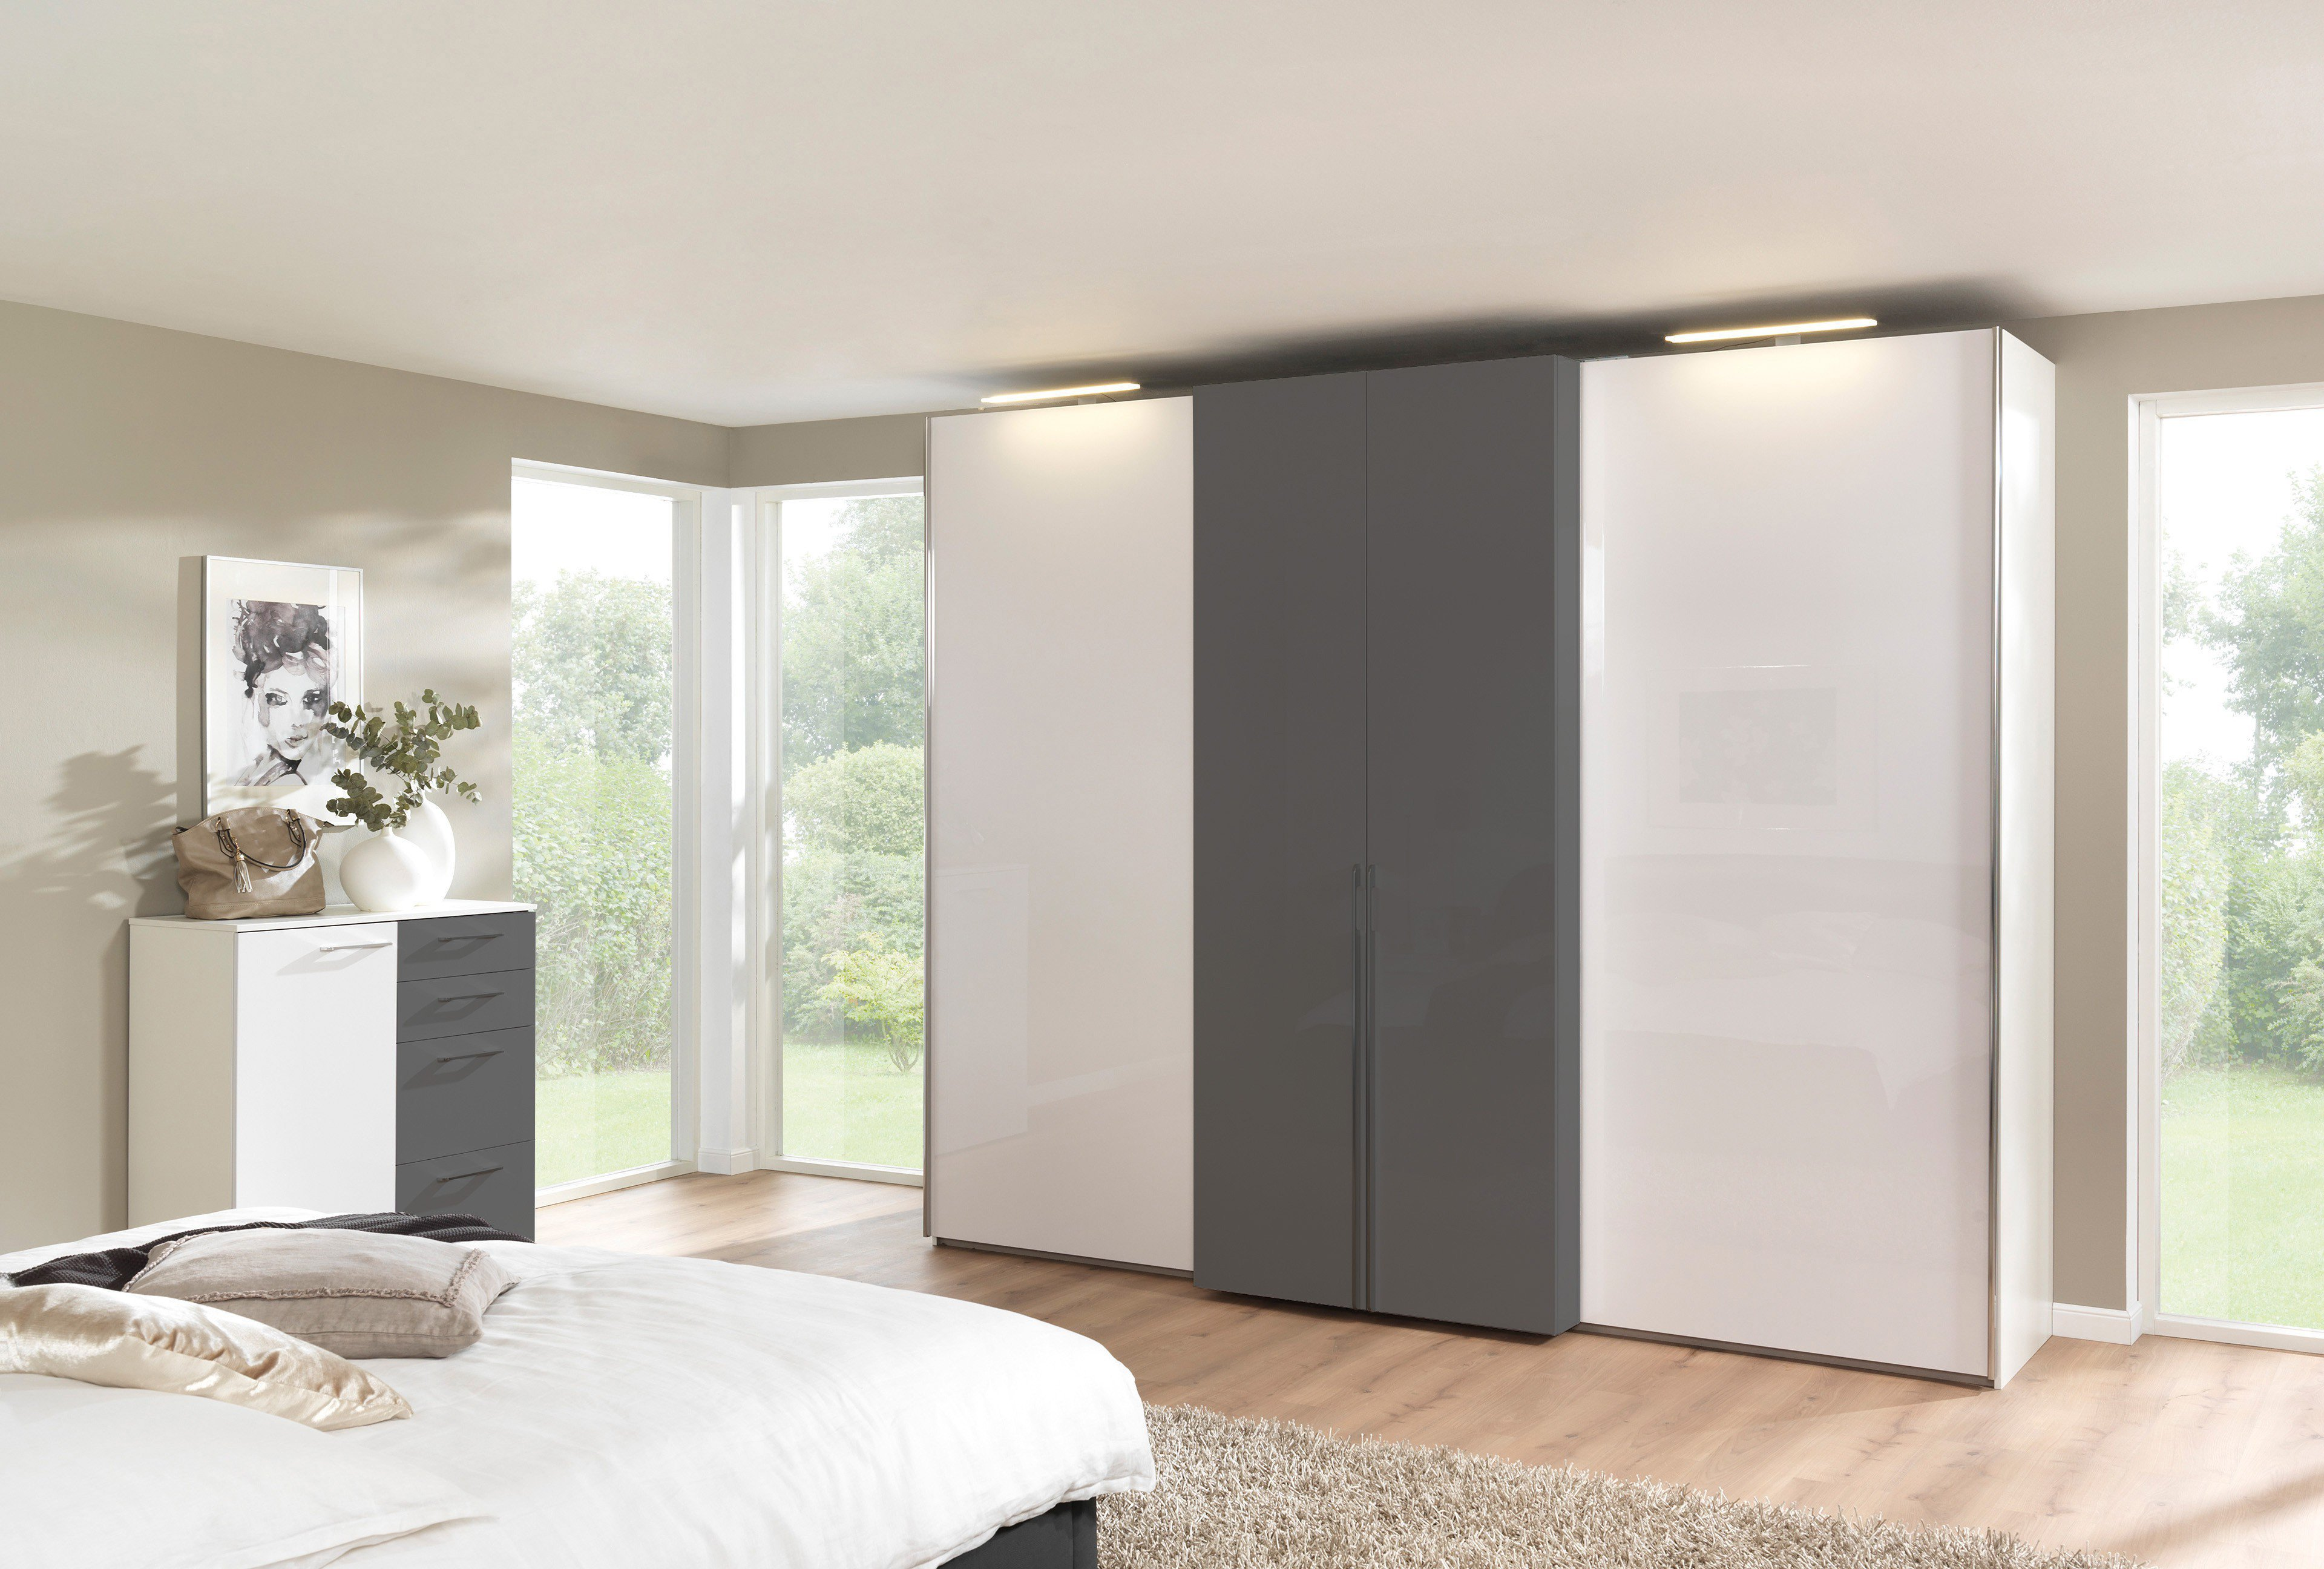 wellem bel koffert rschrank beladis wei grau m bel letz ihr online shop. Black Bedroom Furniture Sets. Home Design Ideas